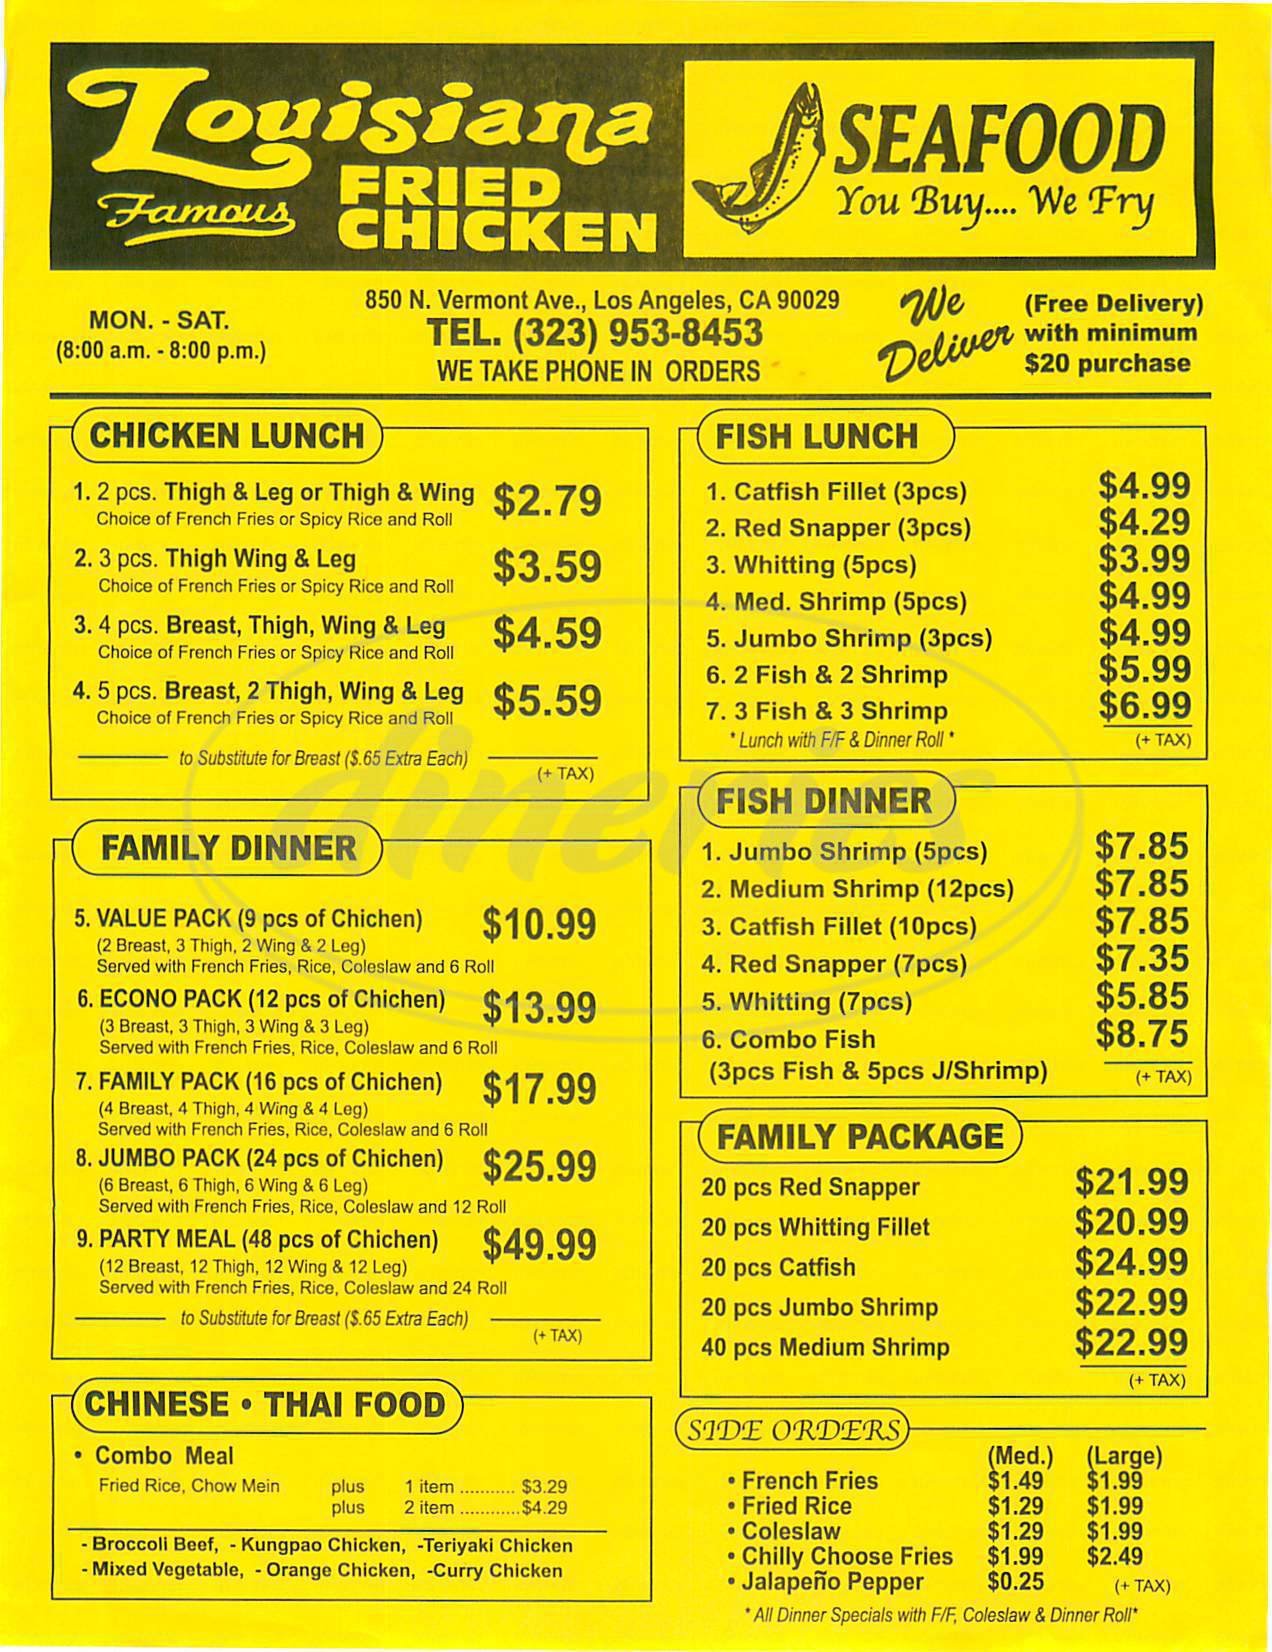 menu for Louisiana Famous Fried Chicken